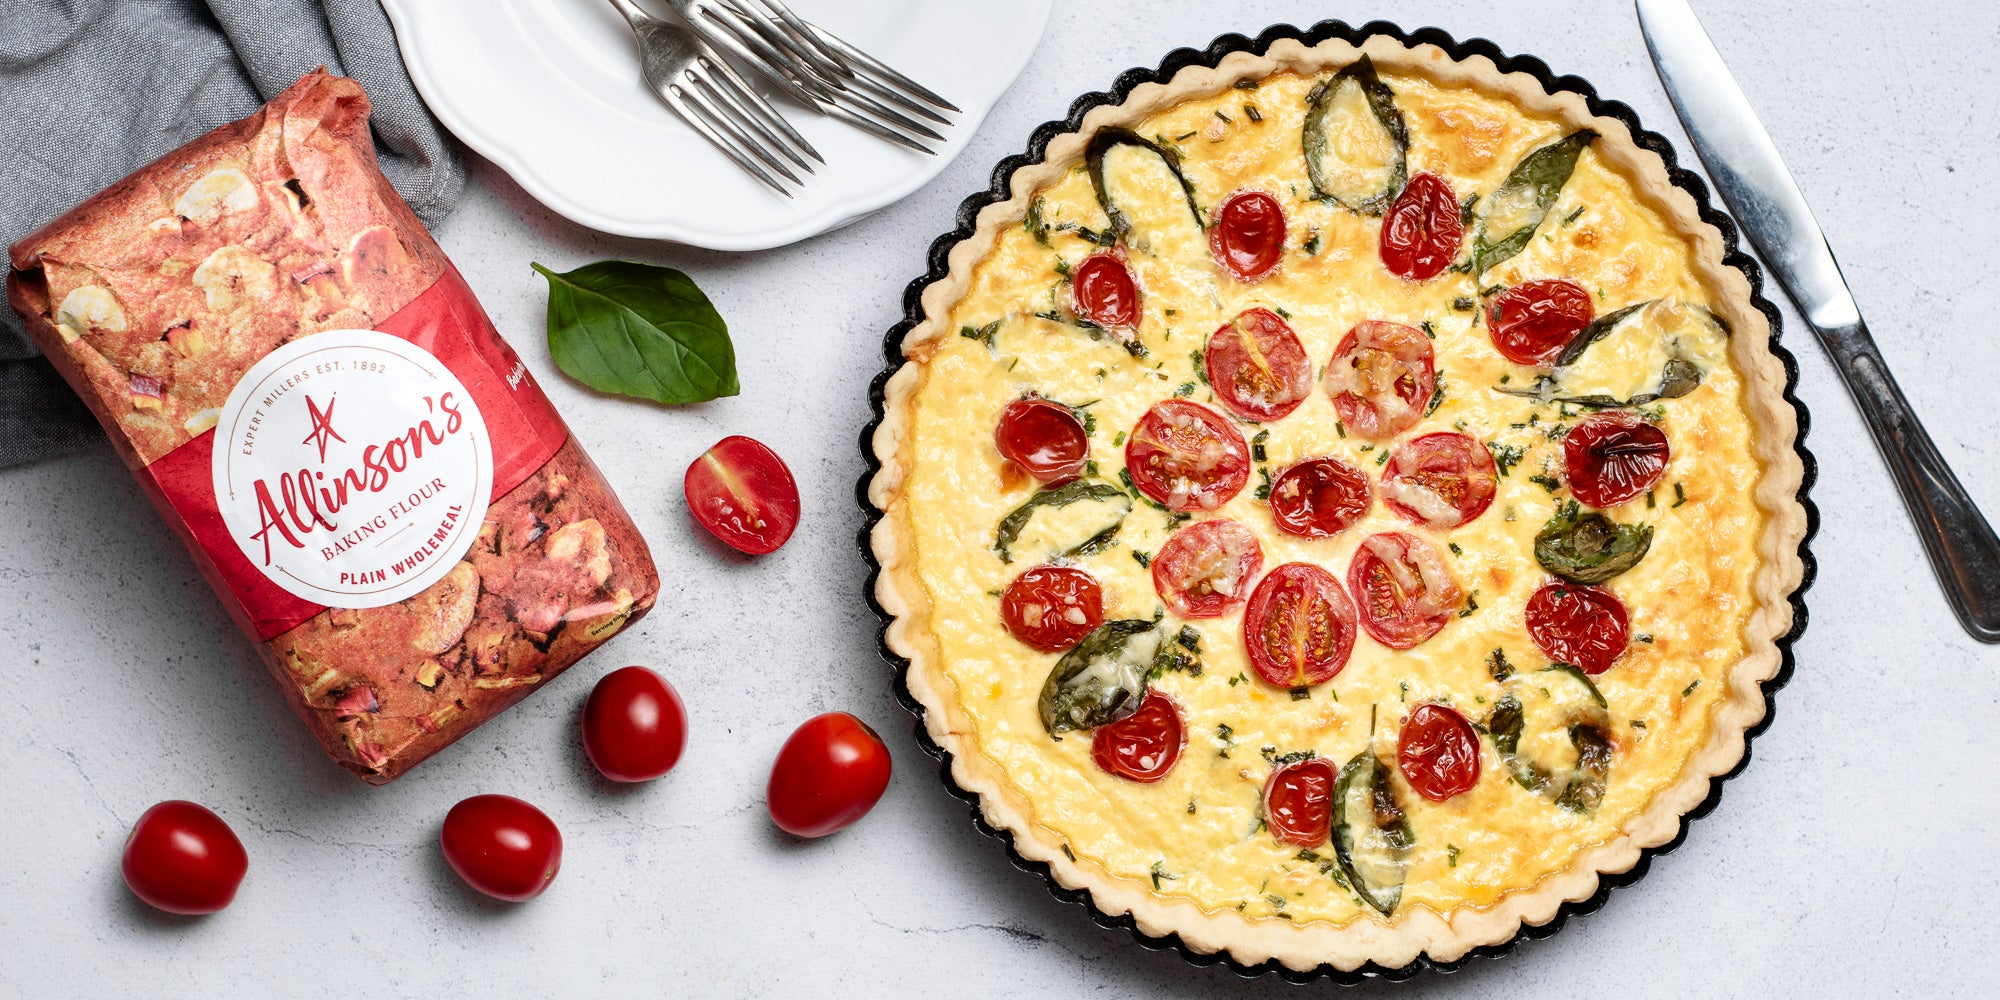 Cheese & Tomato Quiche with a bag of Allinson's Plain Wholemeal flour and chopped tomatoes